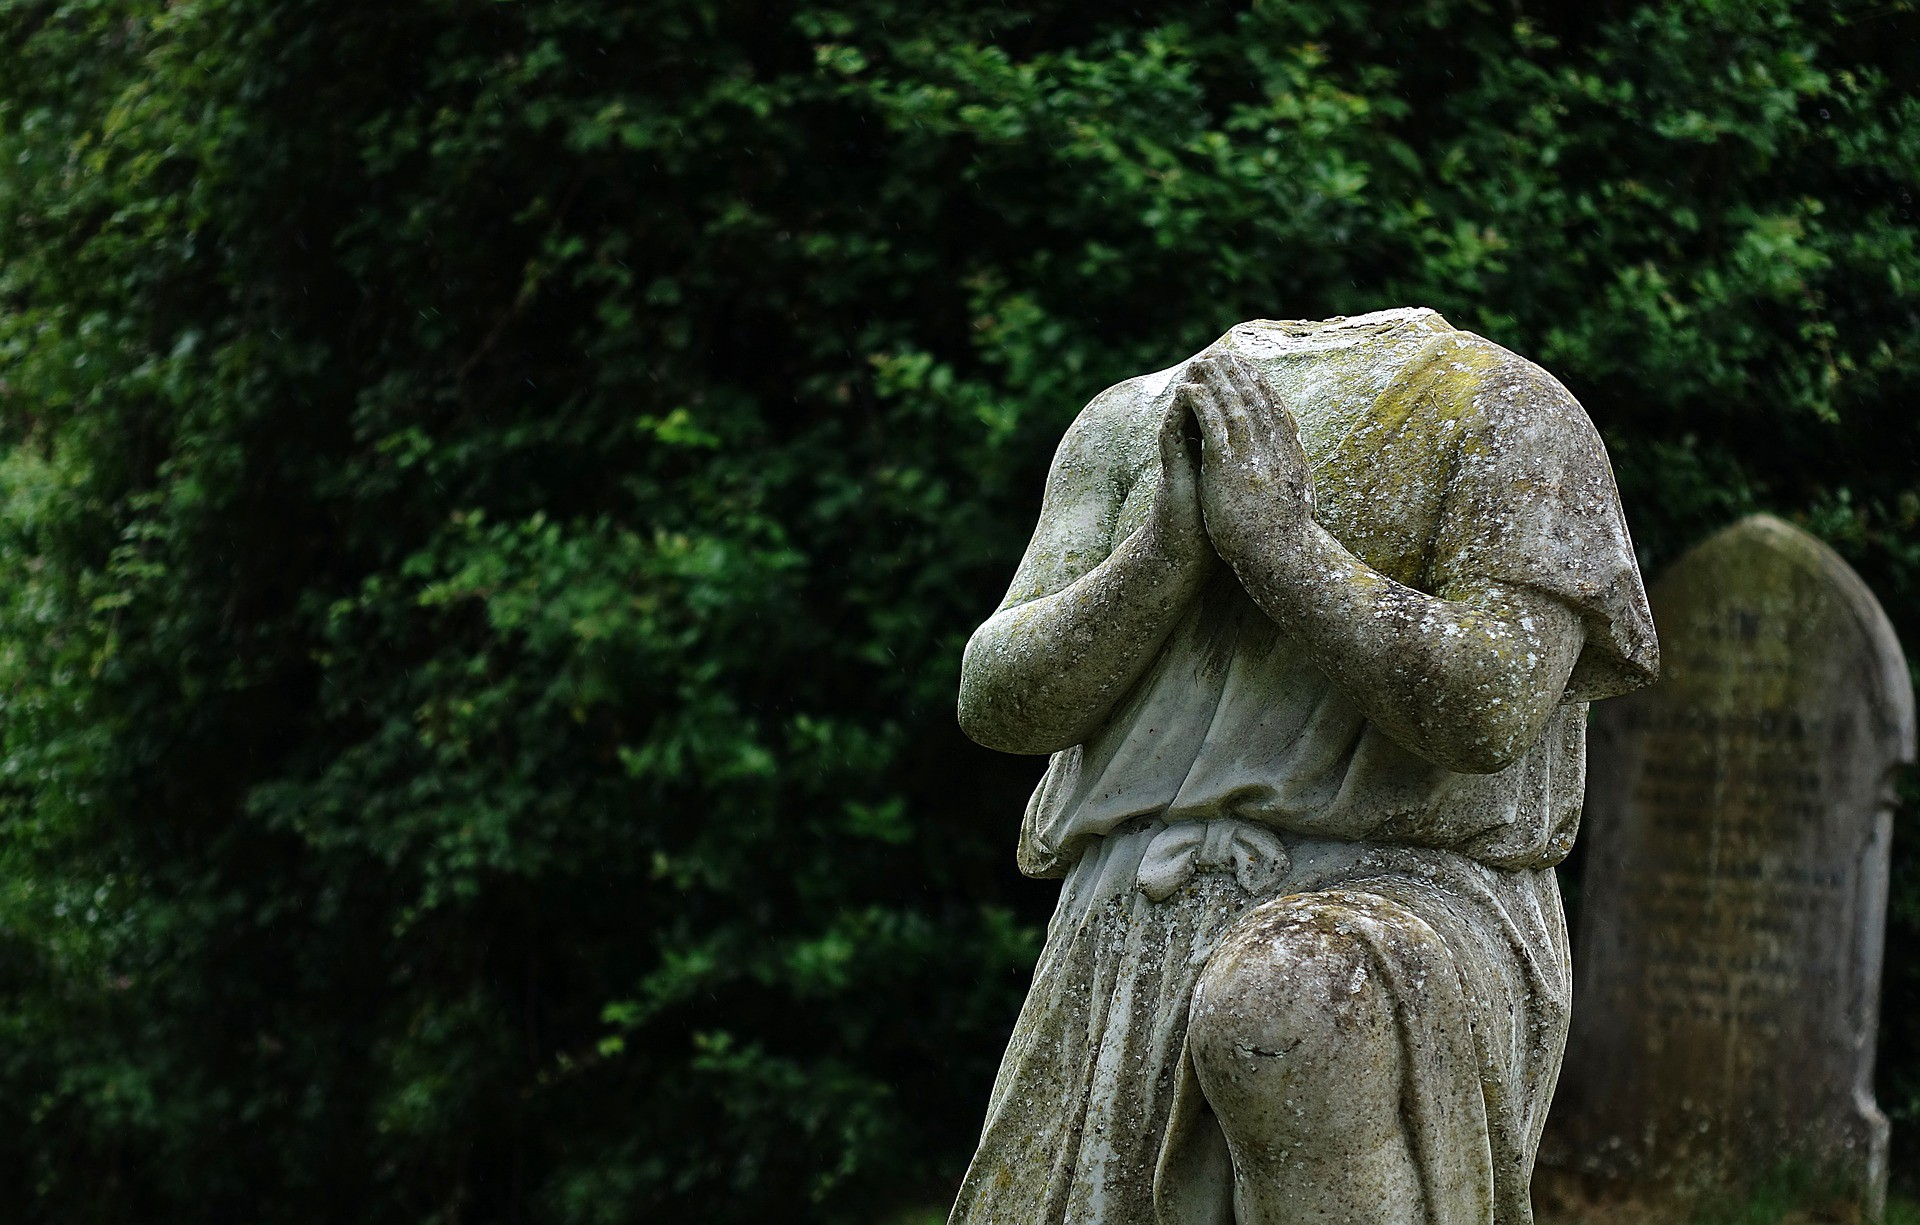 A cement statue of a headless figure with hands in prayer position in a cemetary